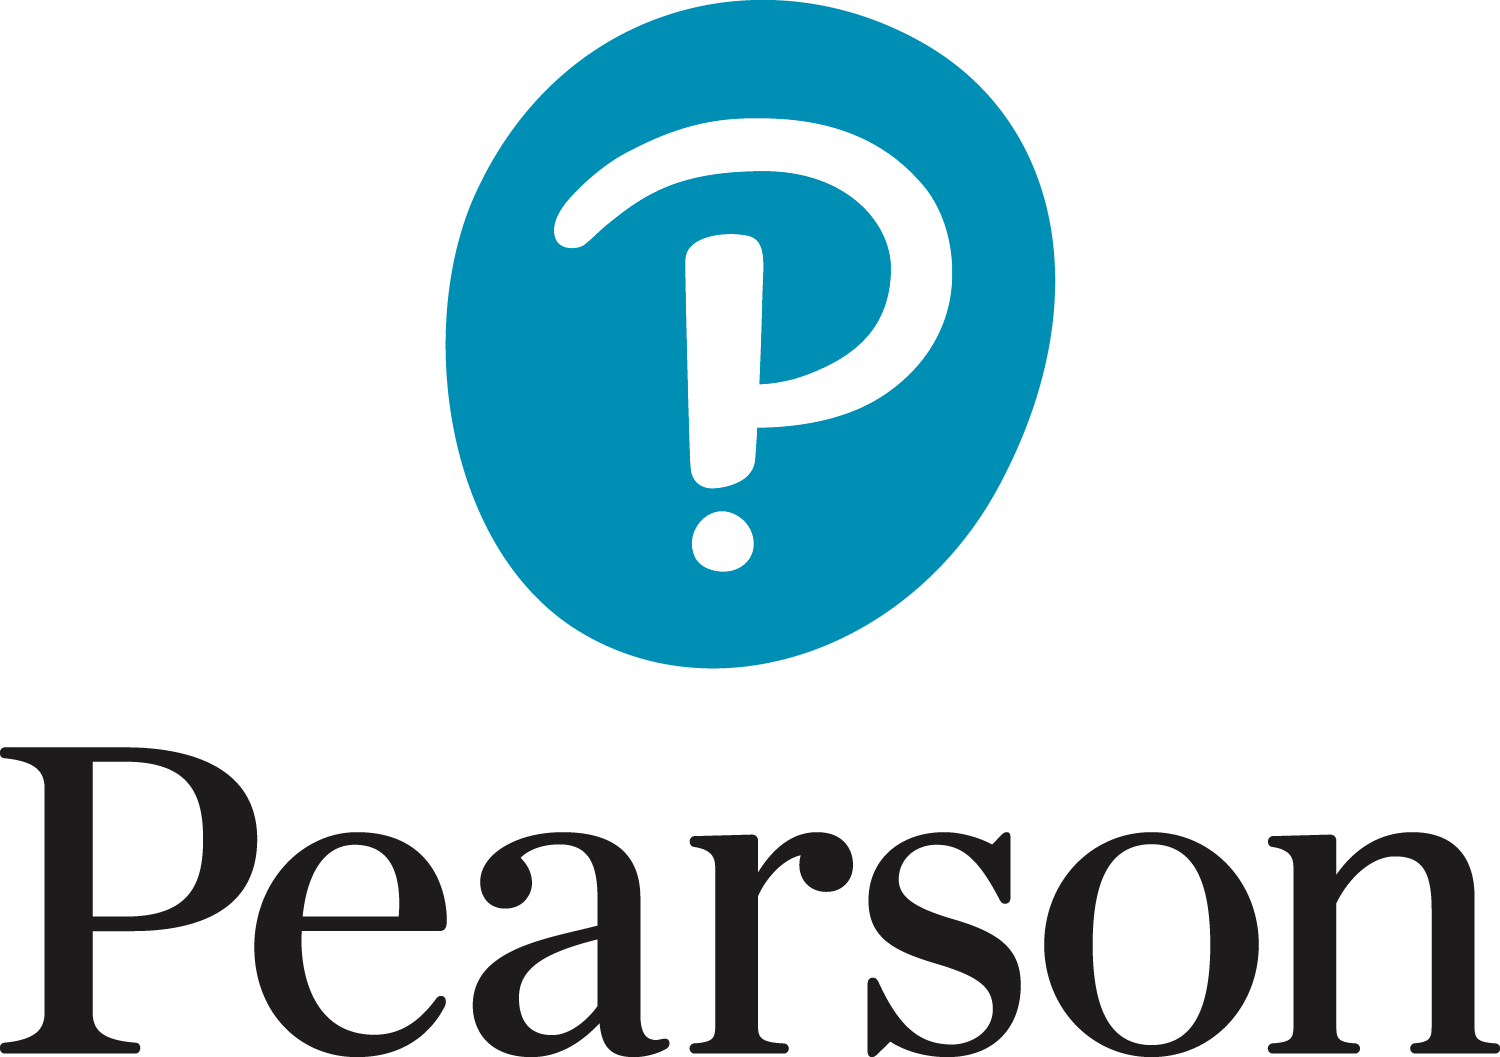 Pearson Accelerated Pathways logo